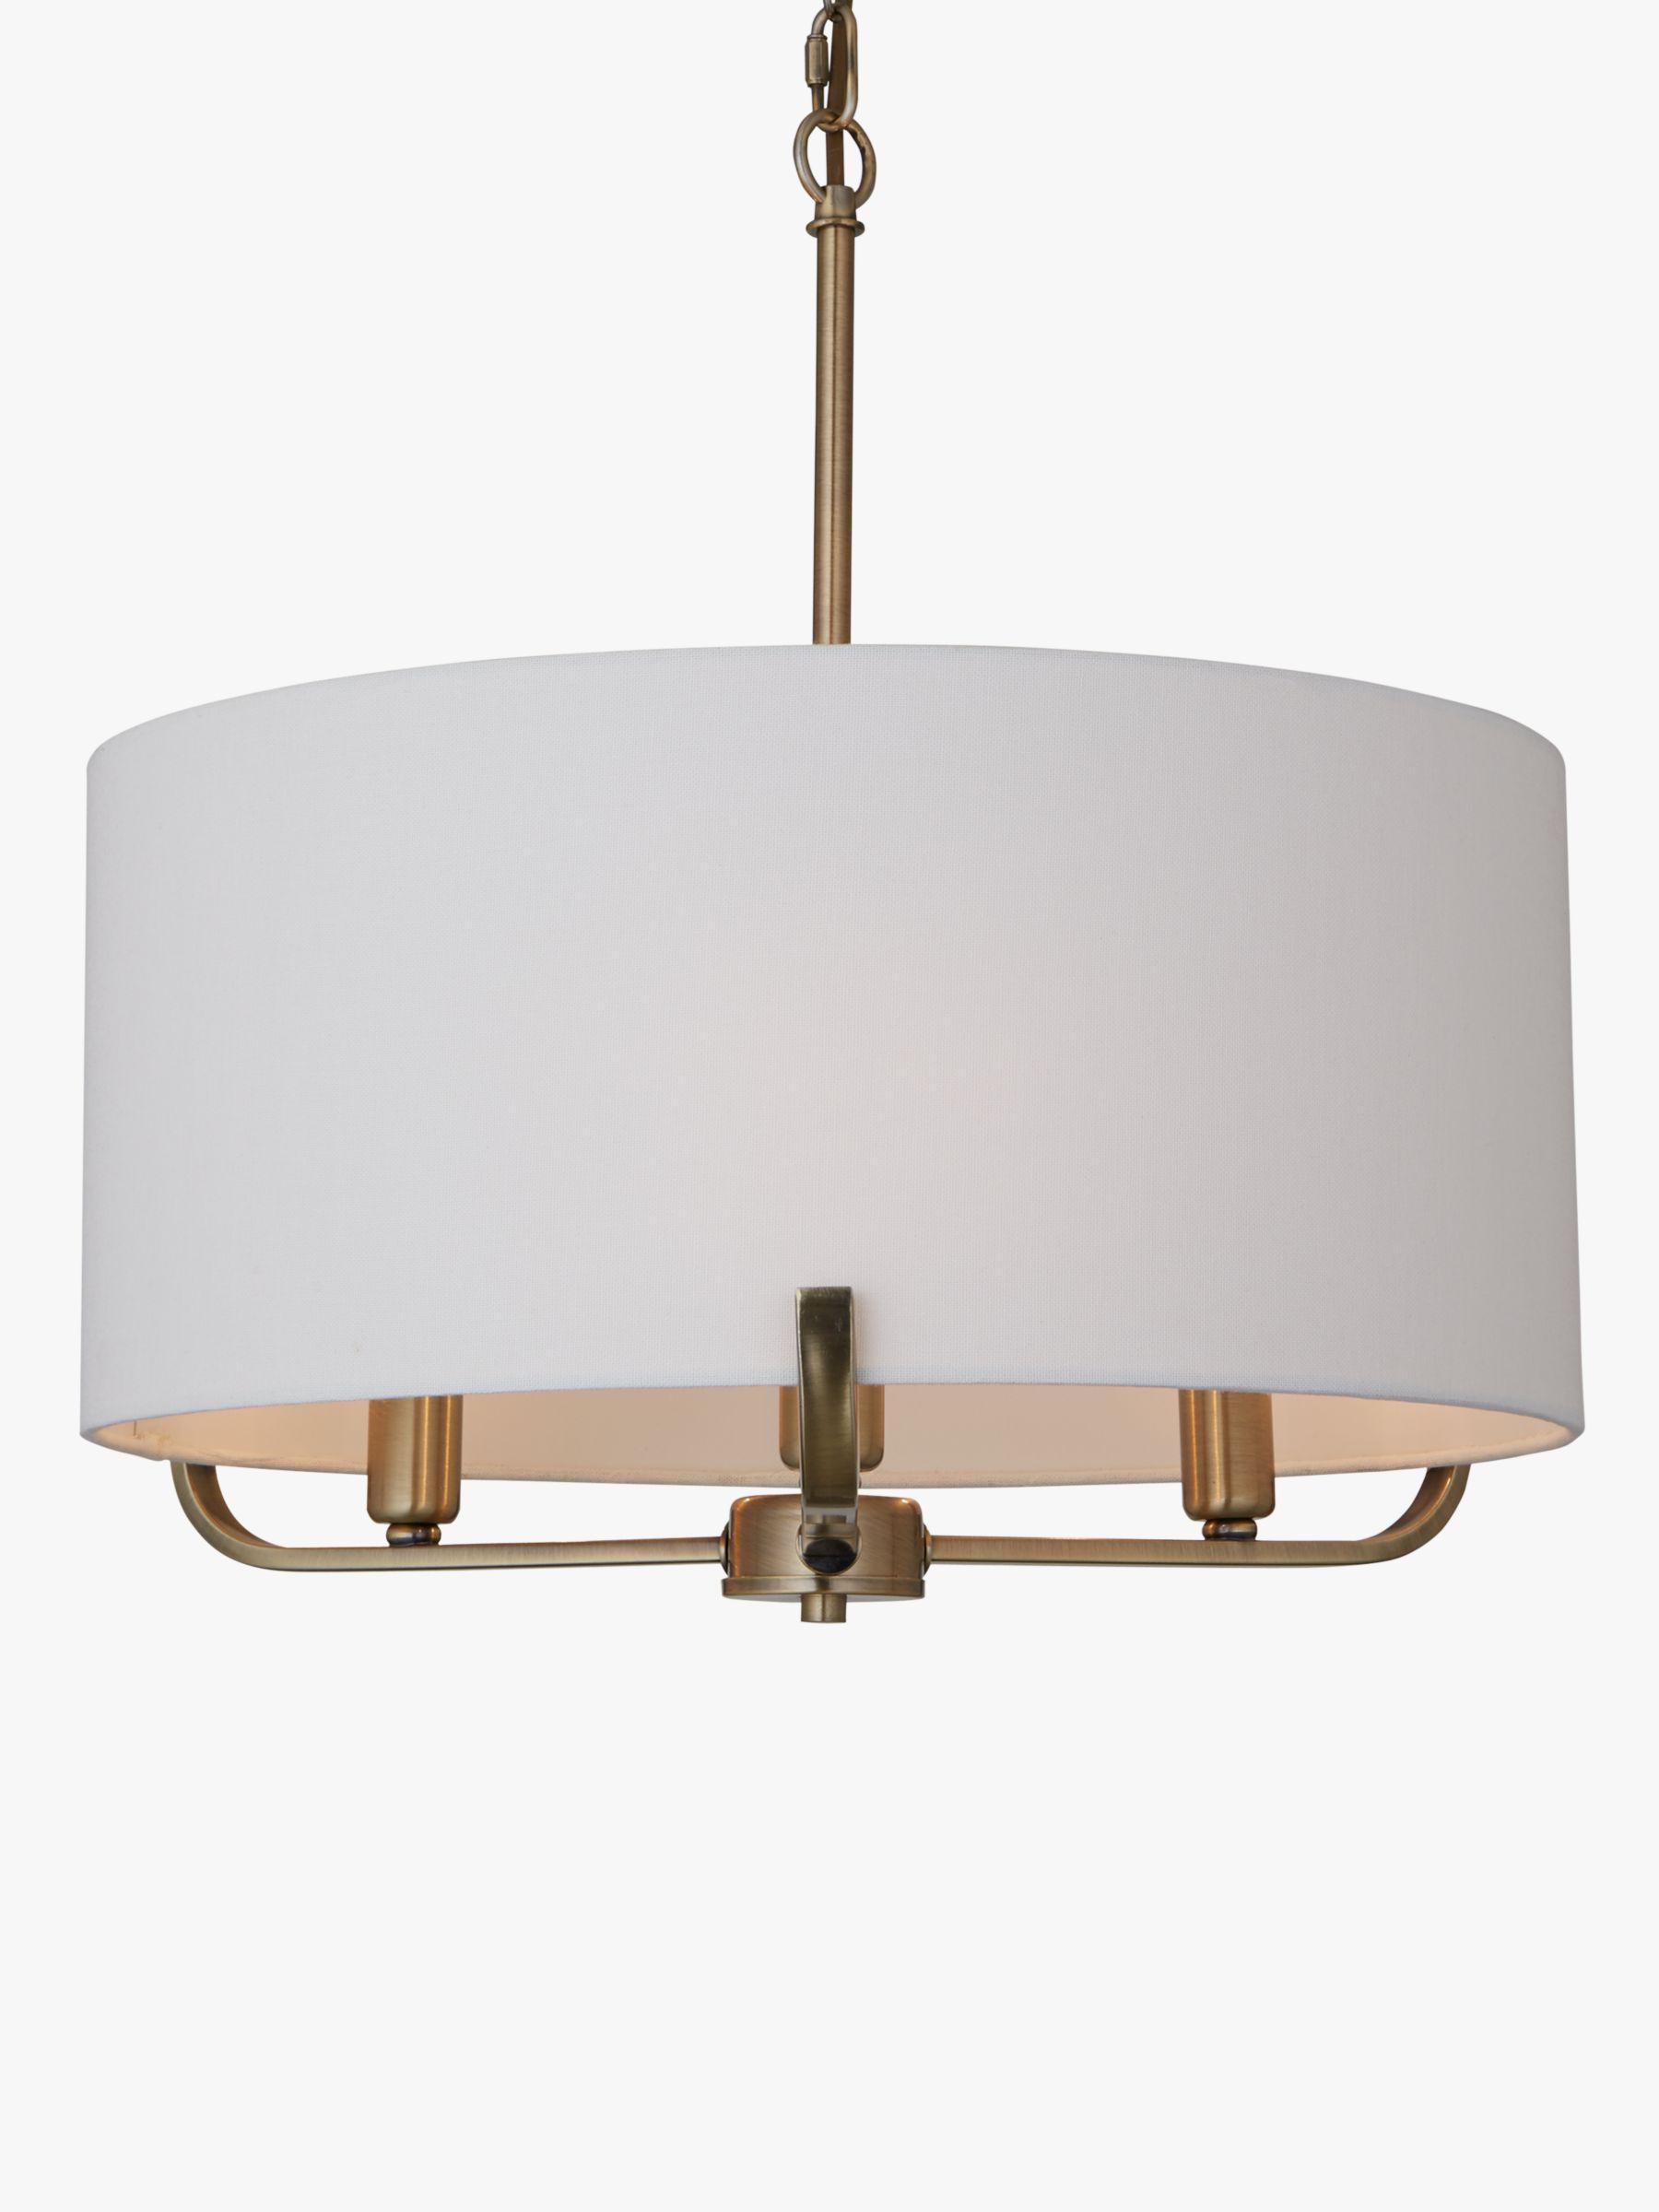 Ceiling Light Fittings At John Lewis : John lewis jamieson pendant ceiling light satin octer